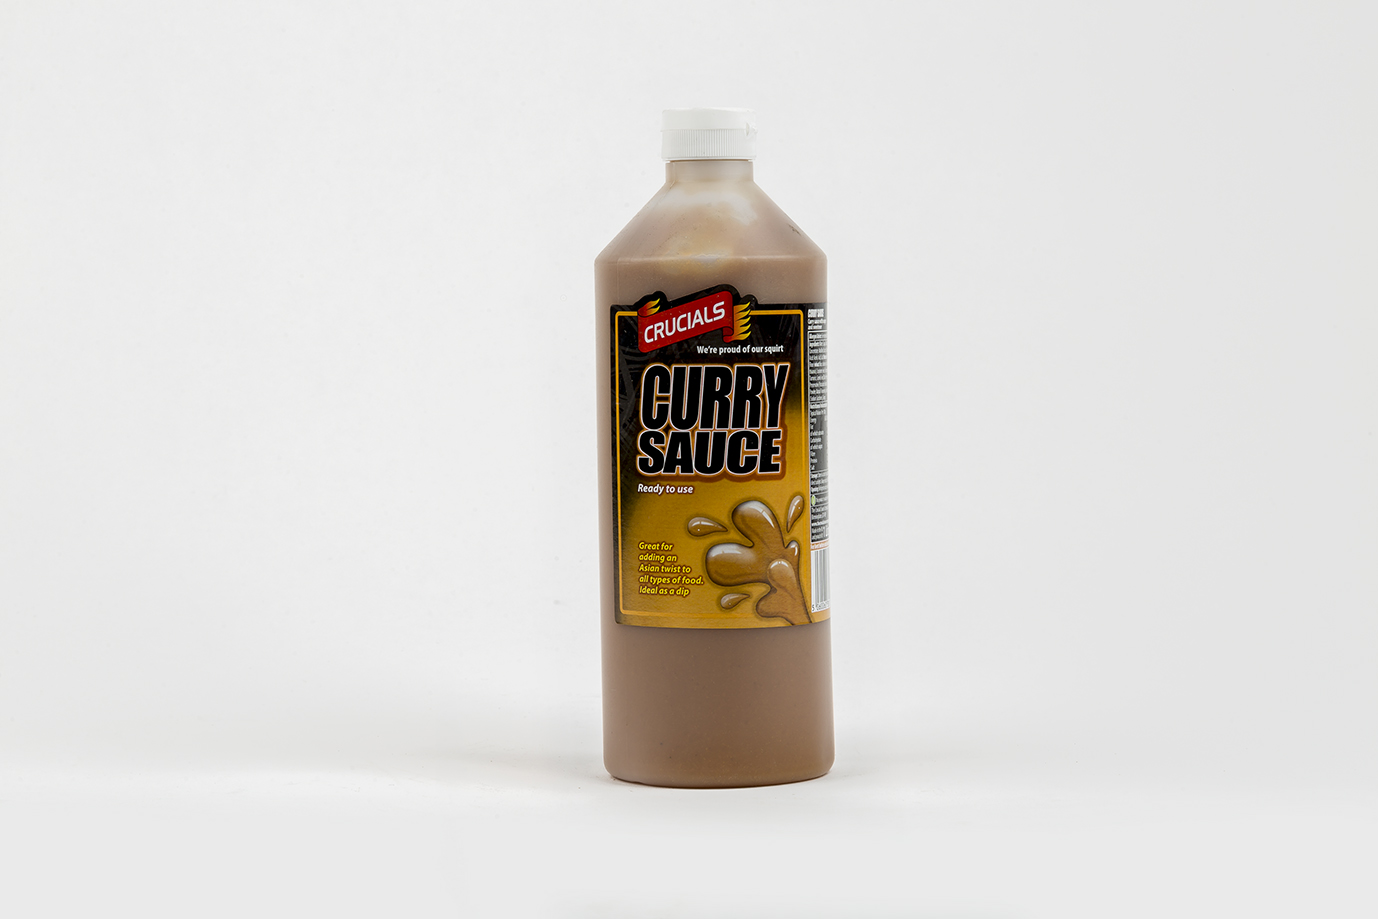 Image of Curry Sauce 1 ltr (Crucial)